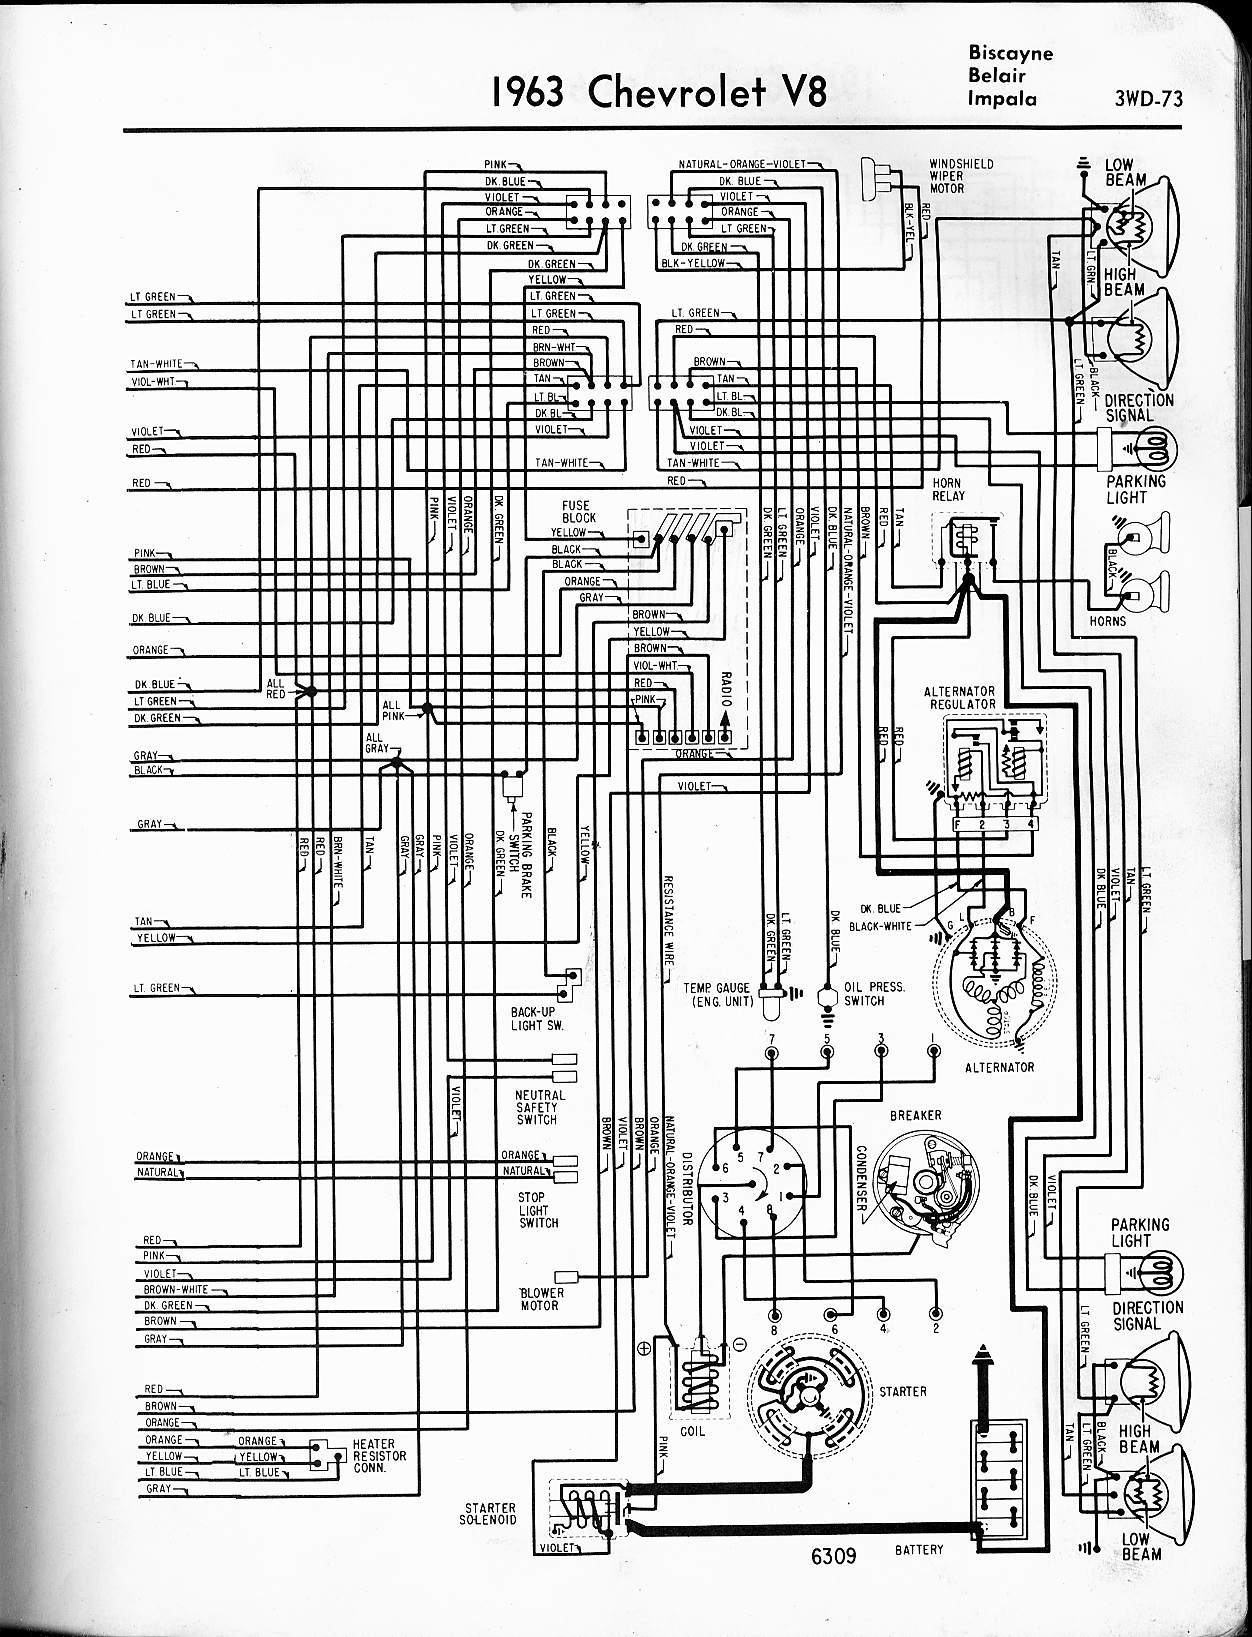 1966 corvette turn signal wiring diagram trailer connector nz 65 impala internal regulator great installation of 57 chevy diagrams rh oldcarmanualproject com 1965